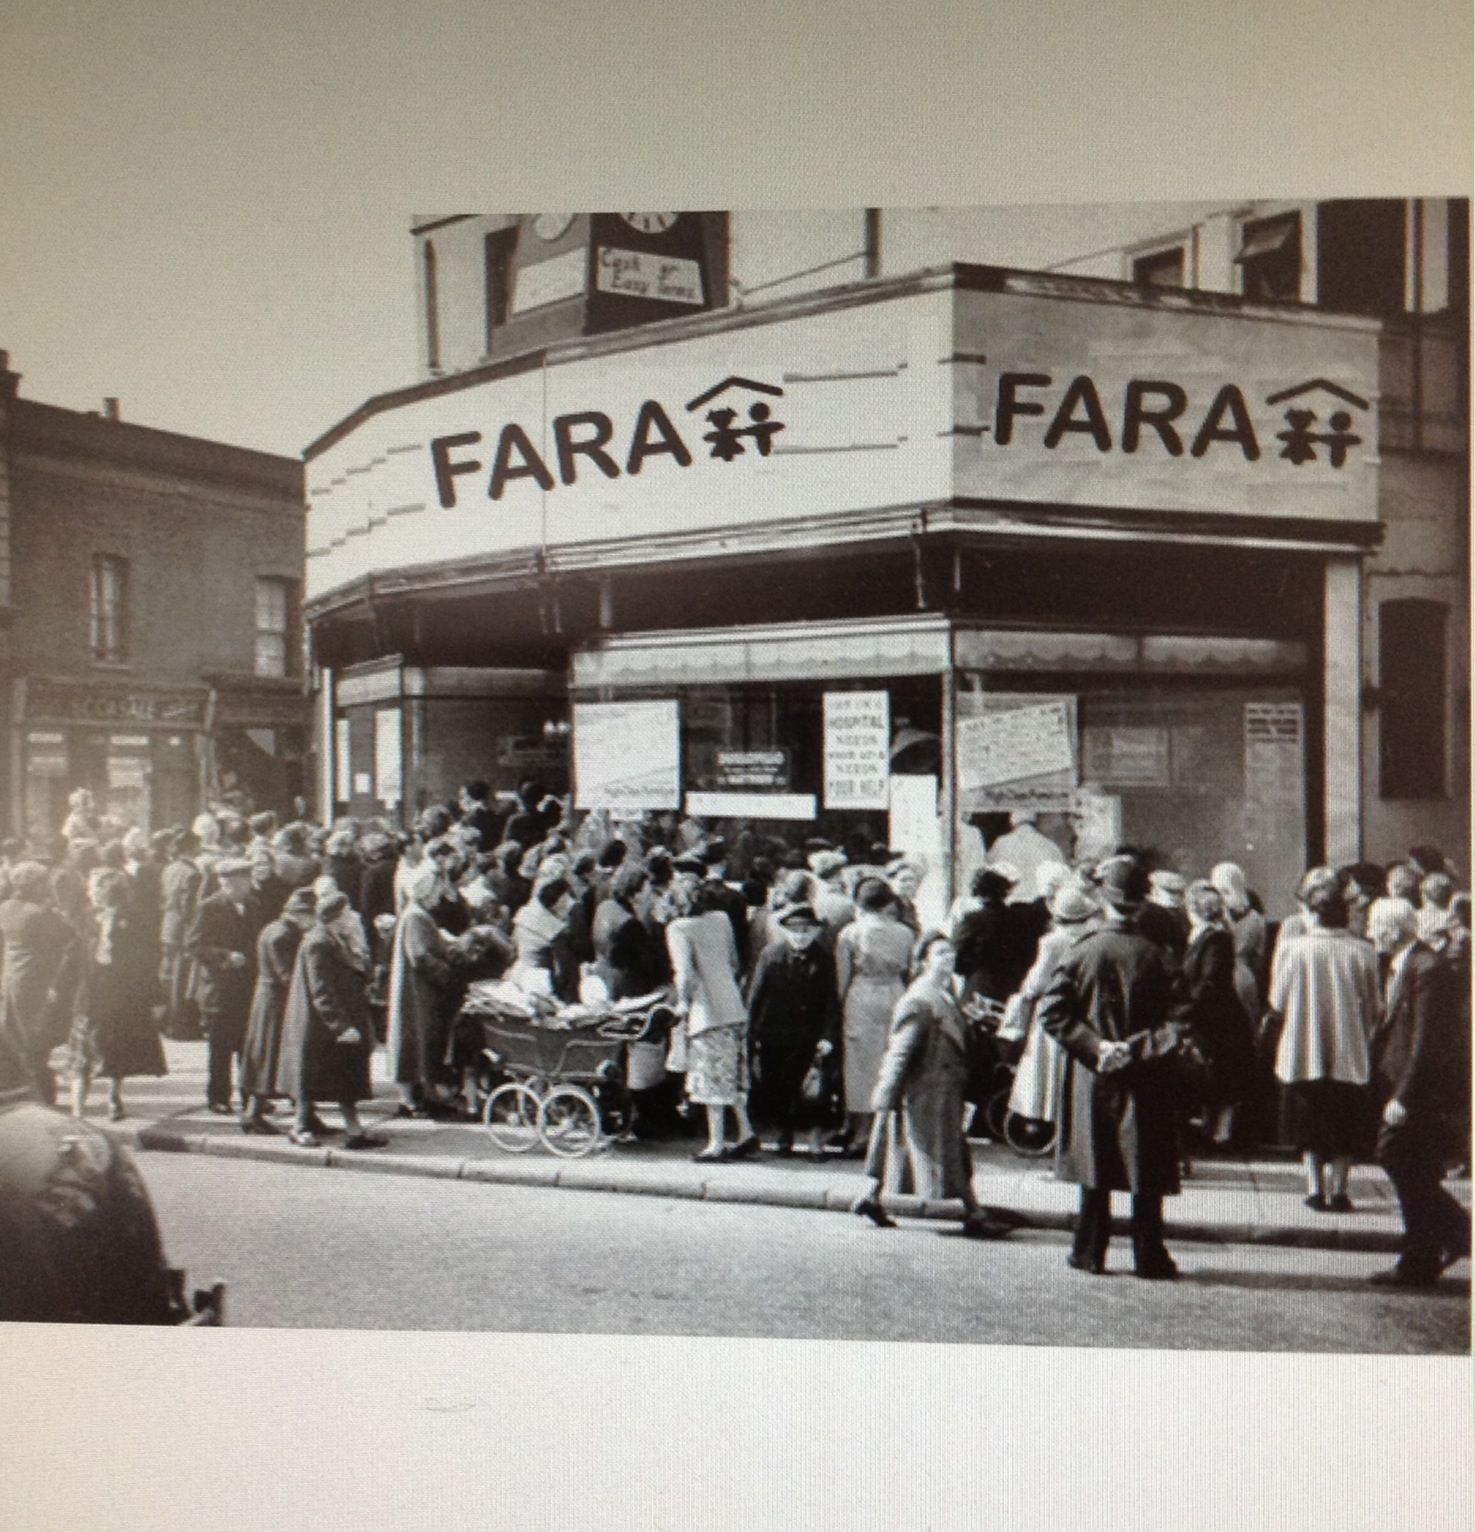 Don't all rush at once - there are 50 FARA shops across London to visit